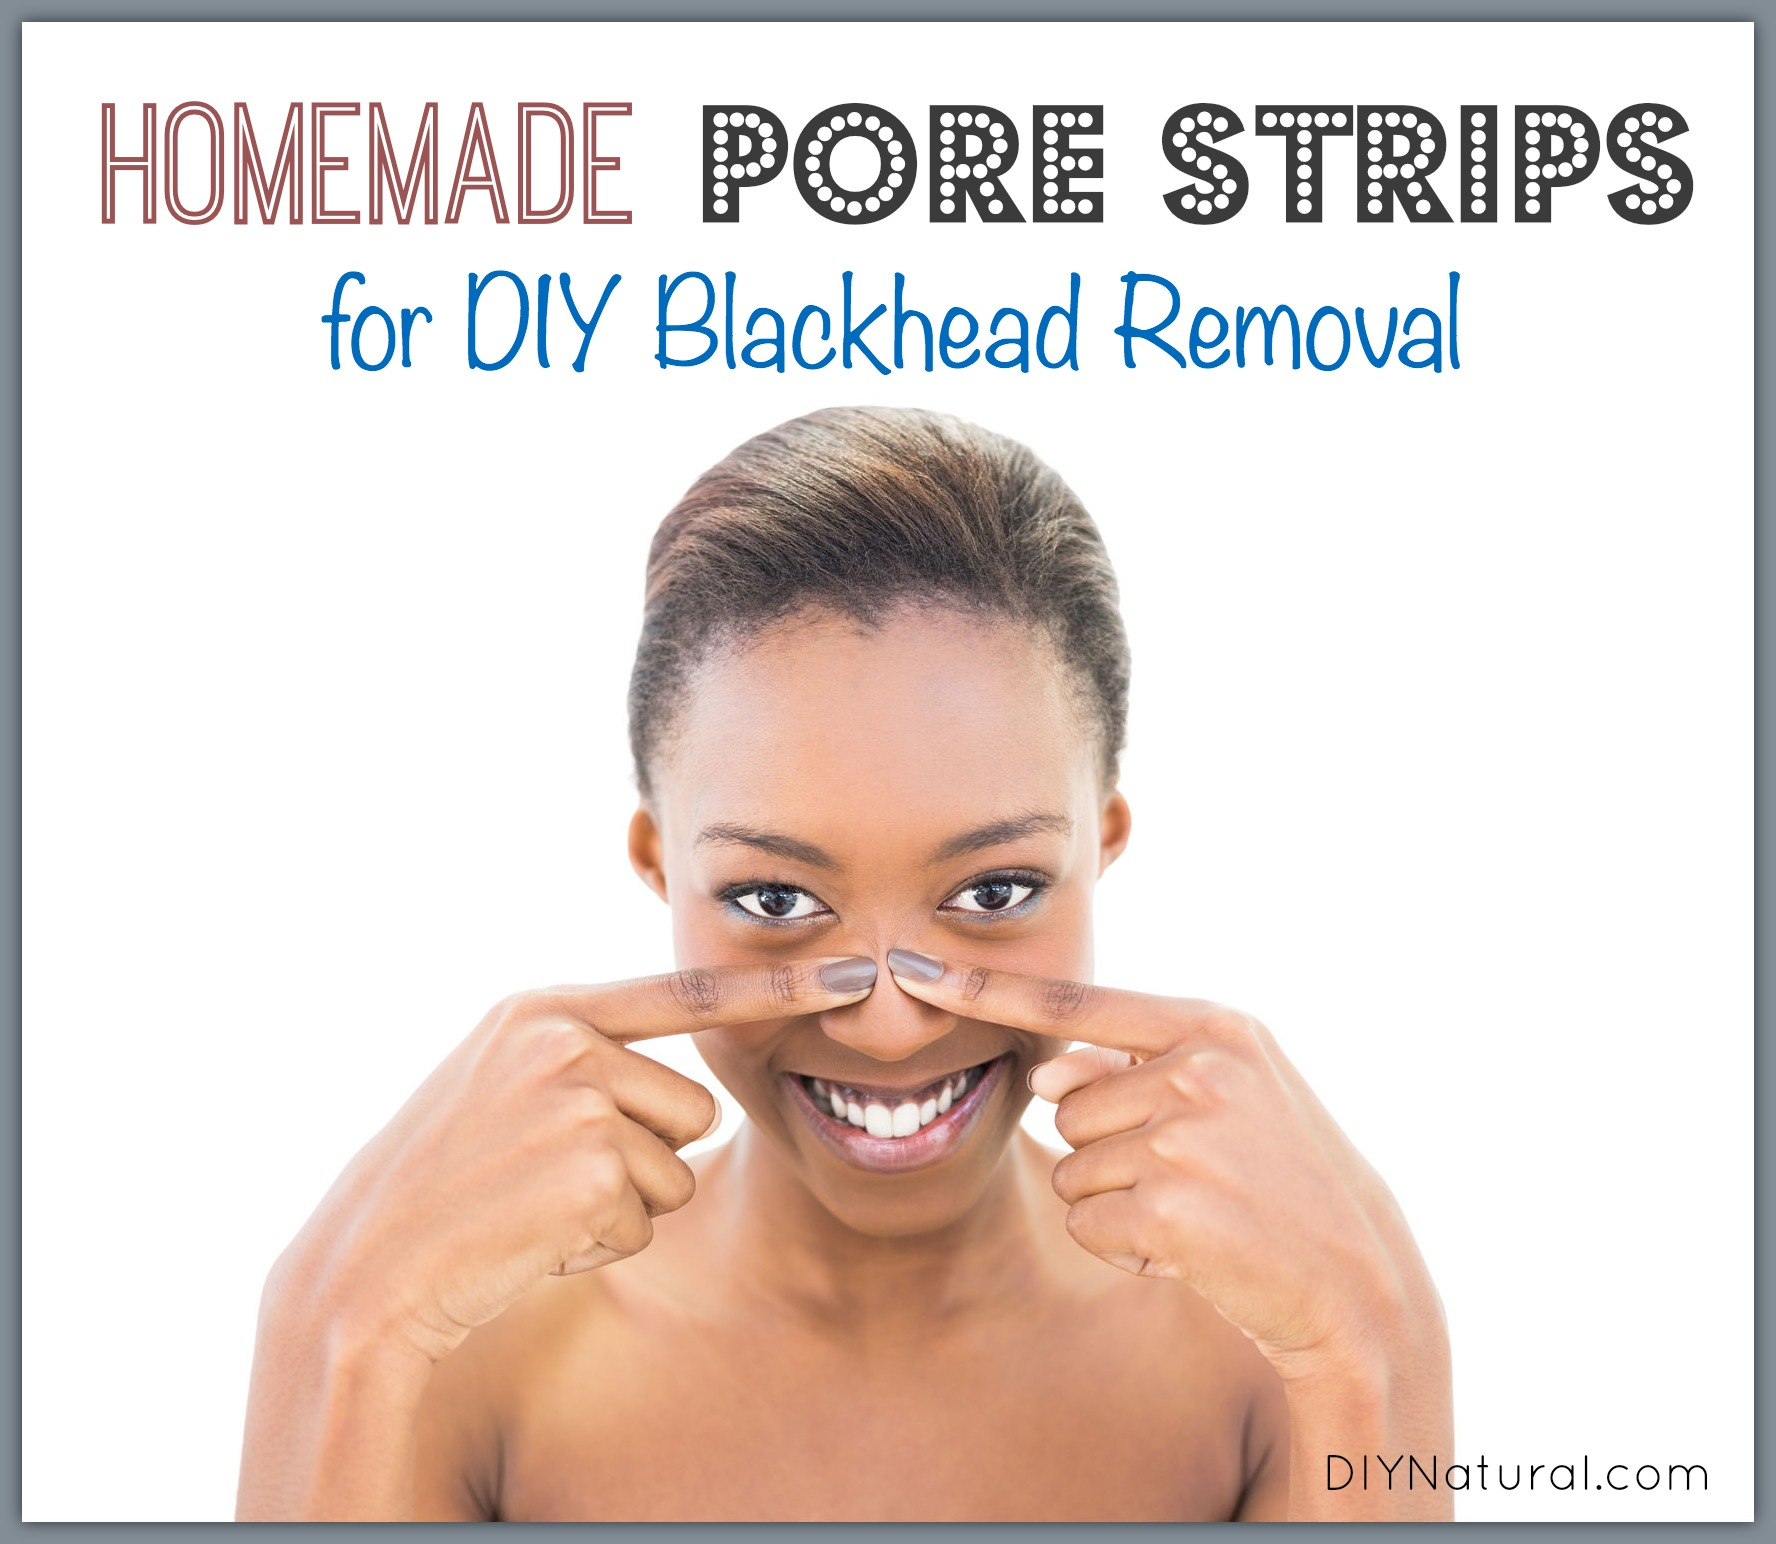 Natural Homemade Pore Strips For DIY Blackhead Removal